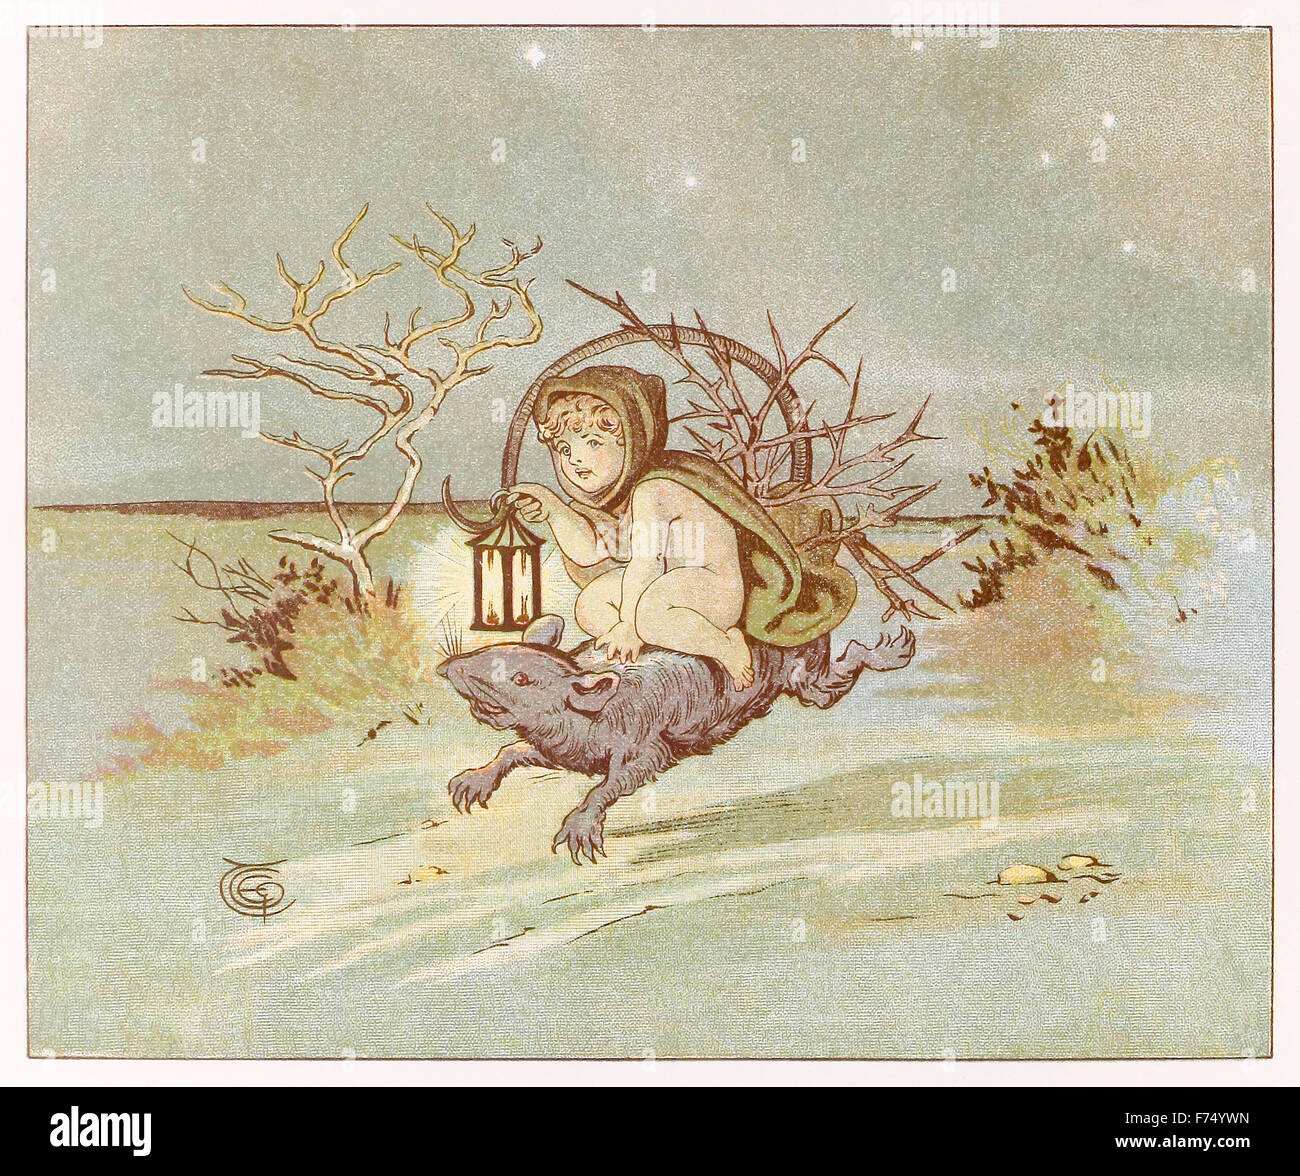 'They have planted thorn-trees, For pleasure, here and there' from 'The Fairies – A Child's Song' - Stock Image